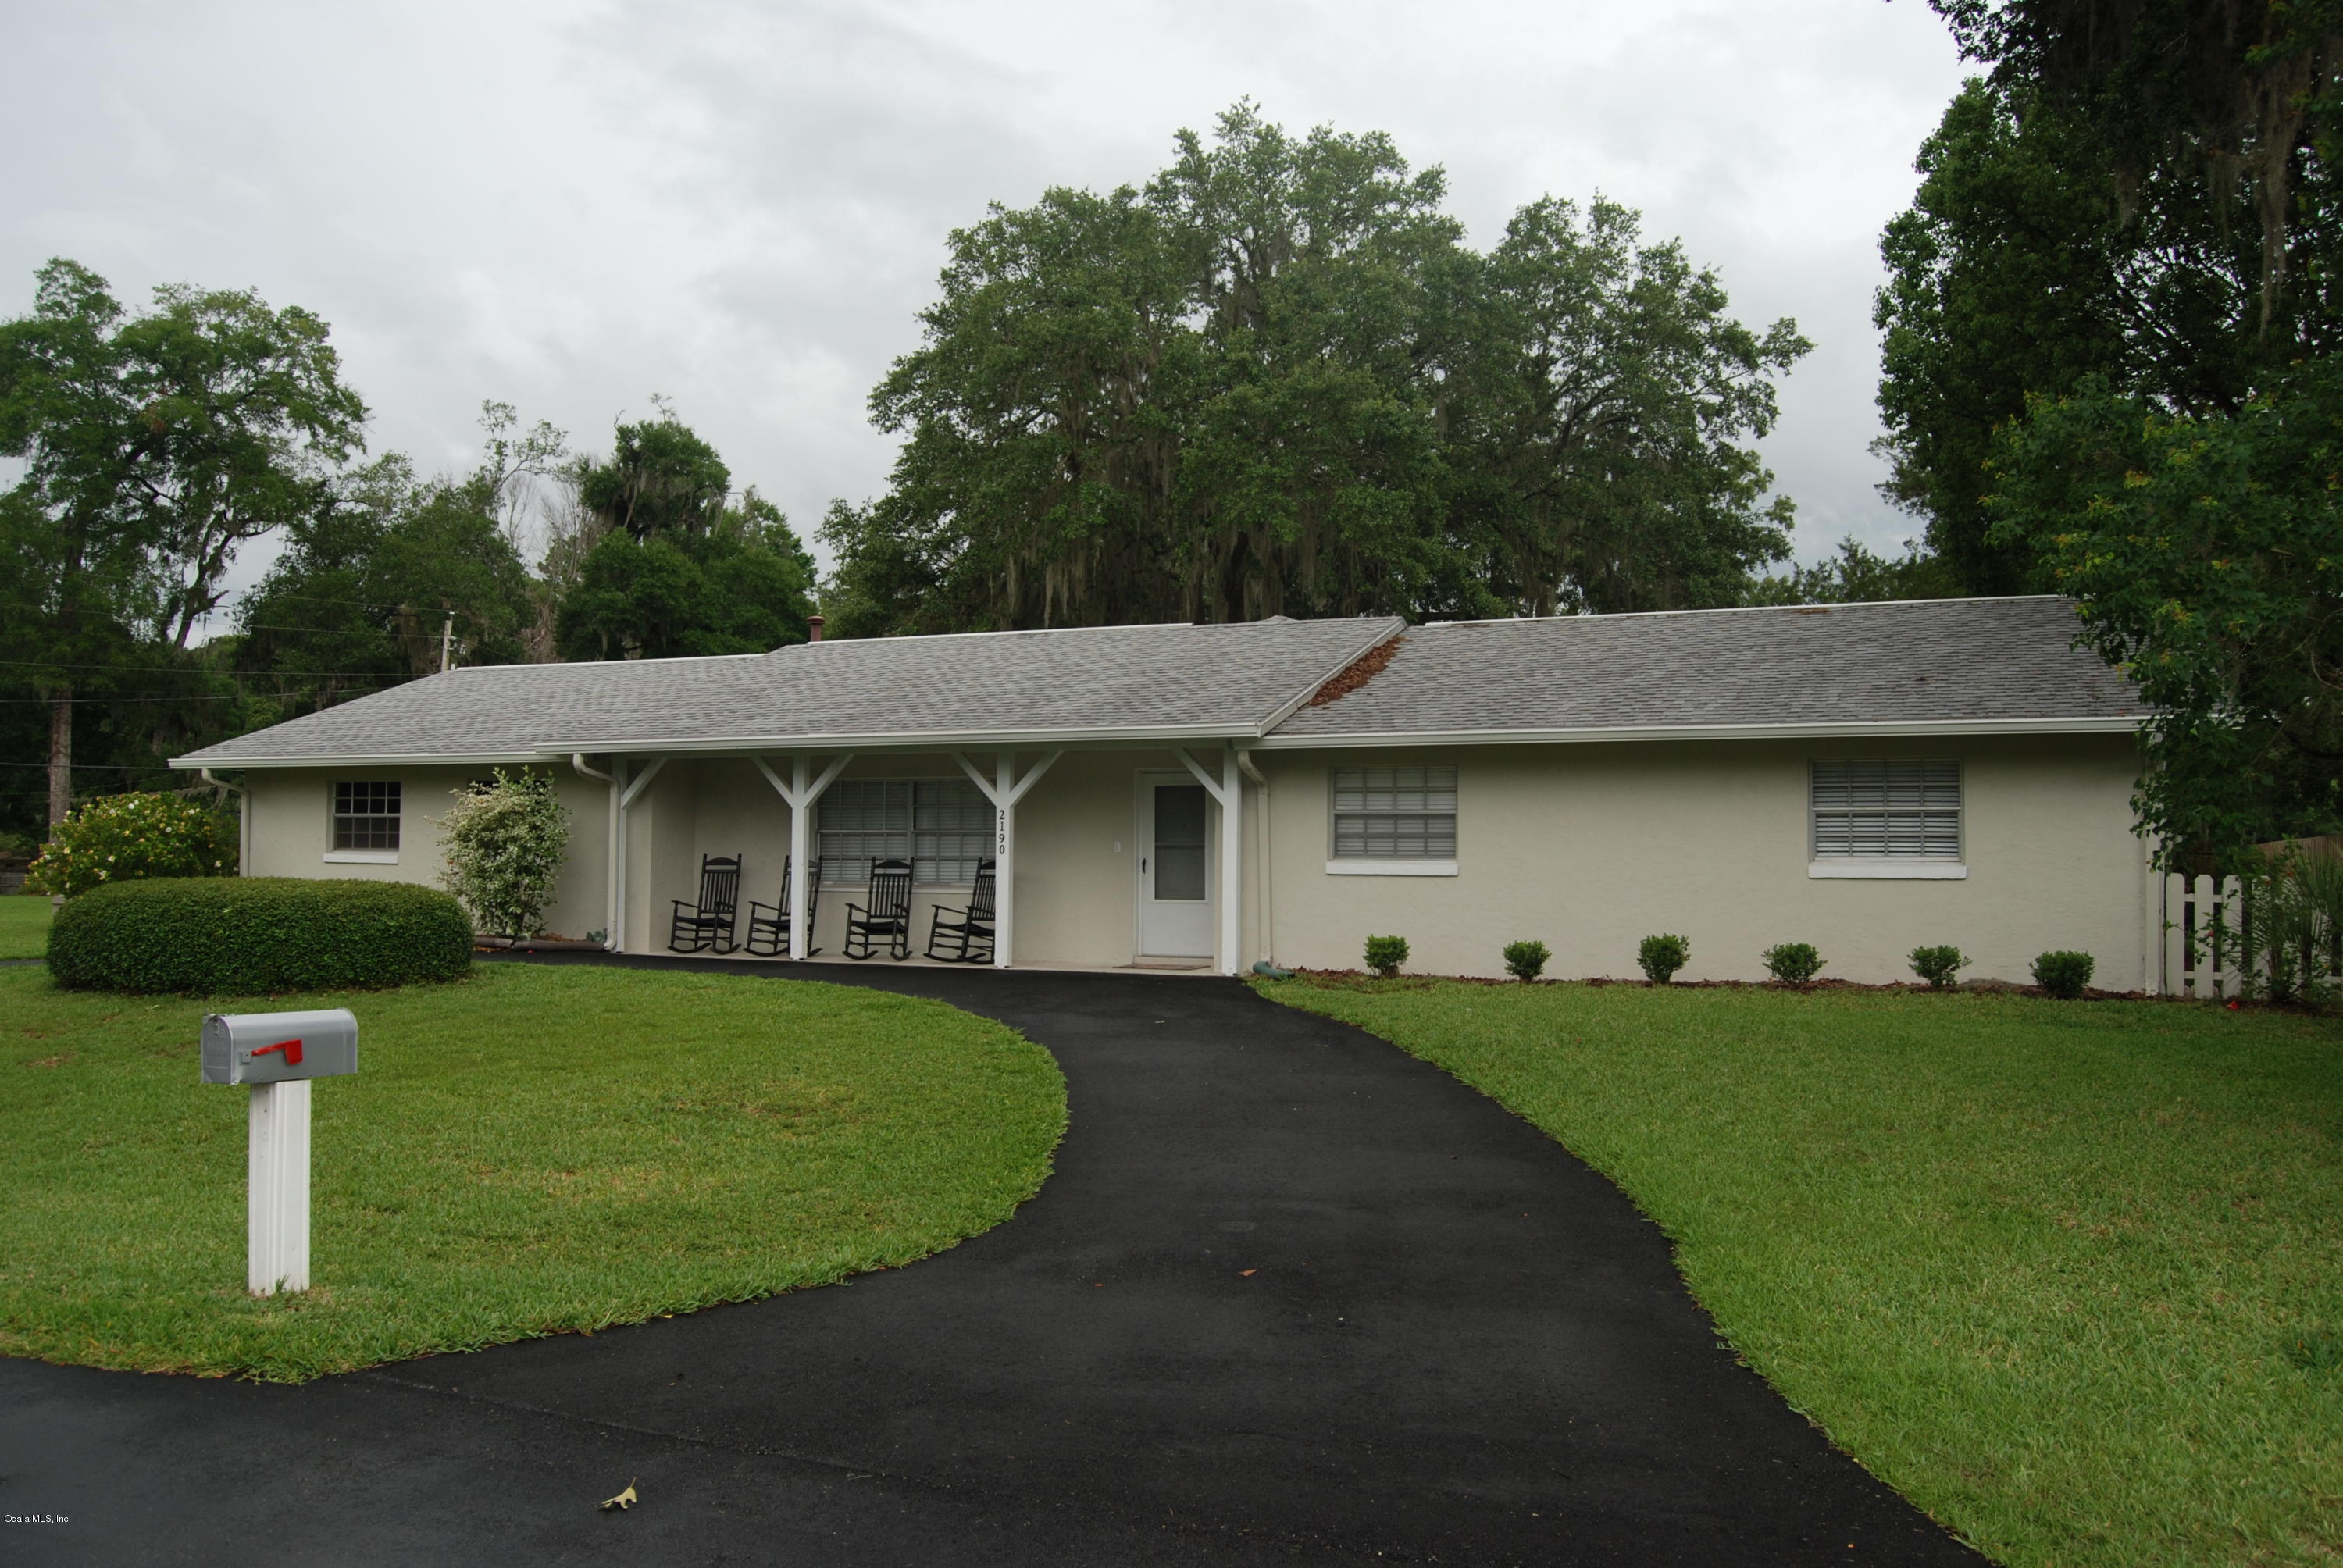 2190 SE 39TH STREET, OCALA, FL 34480